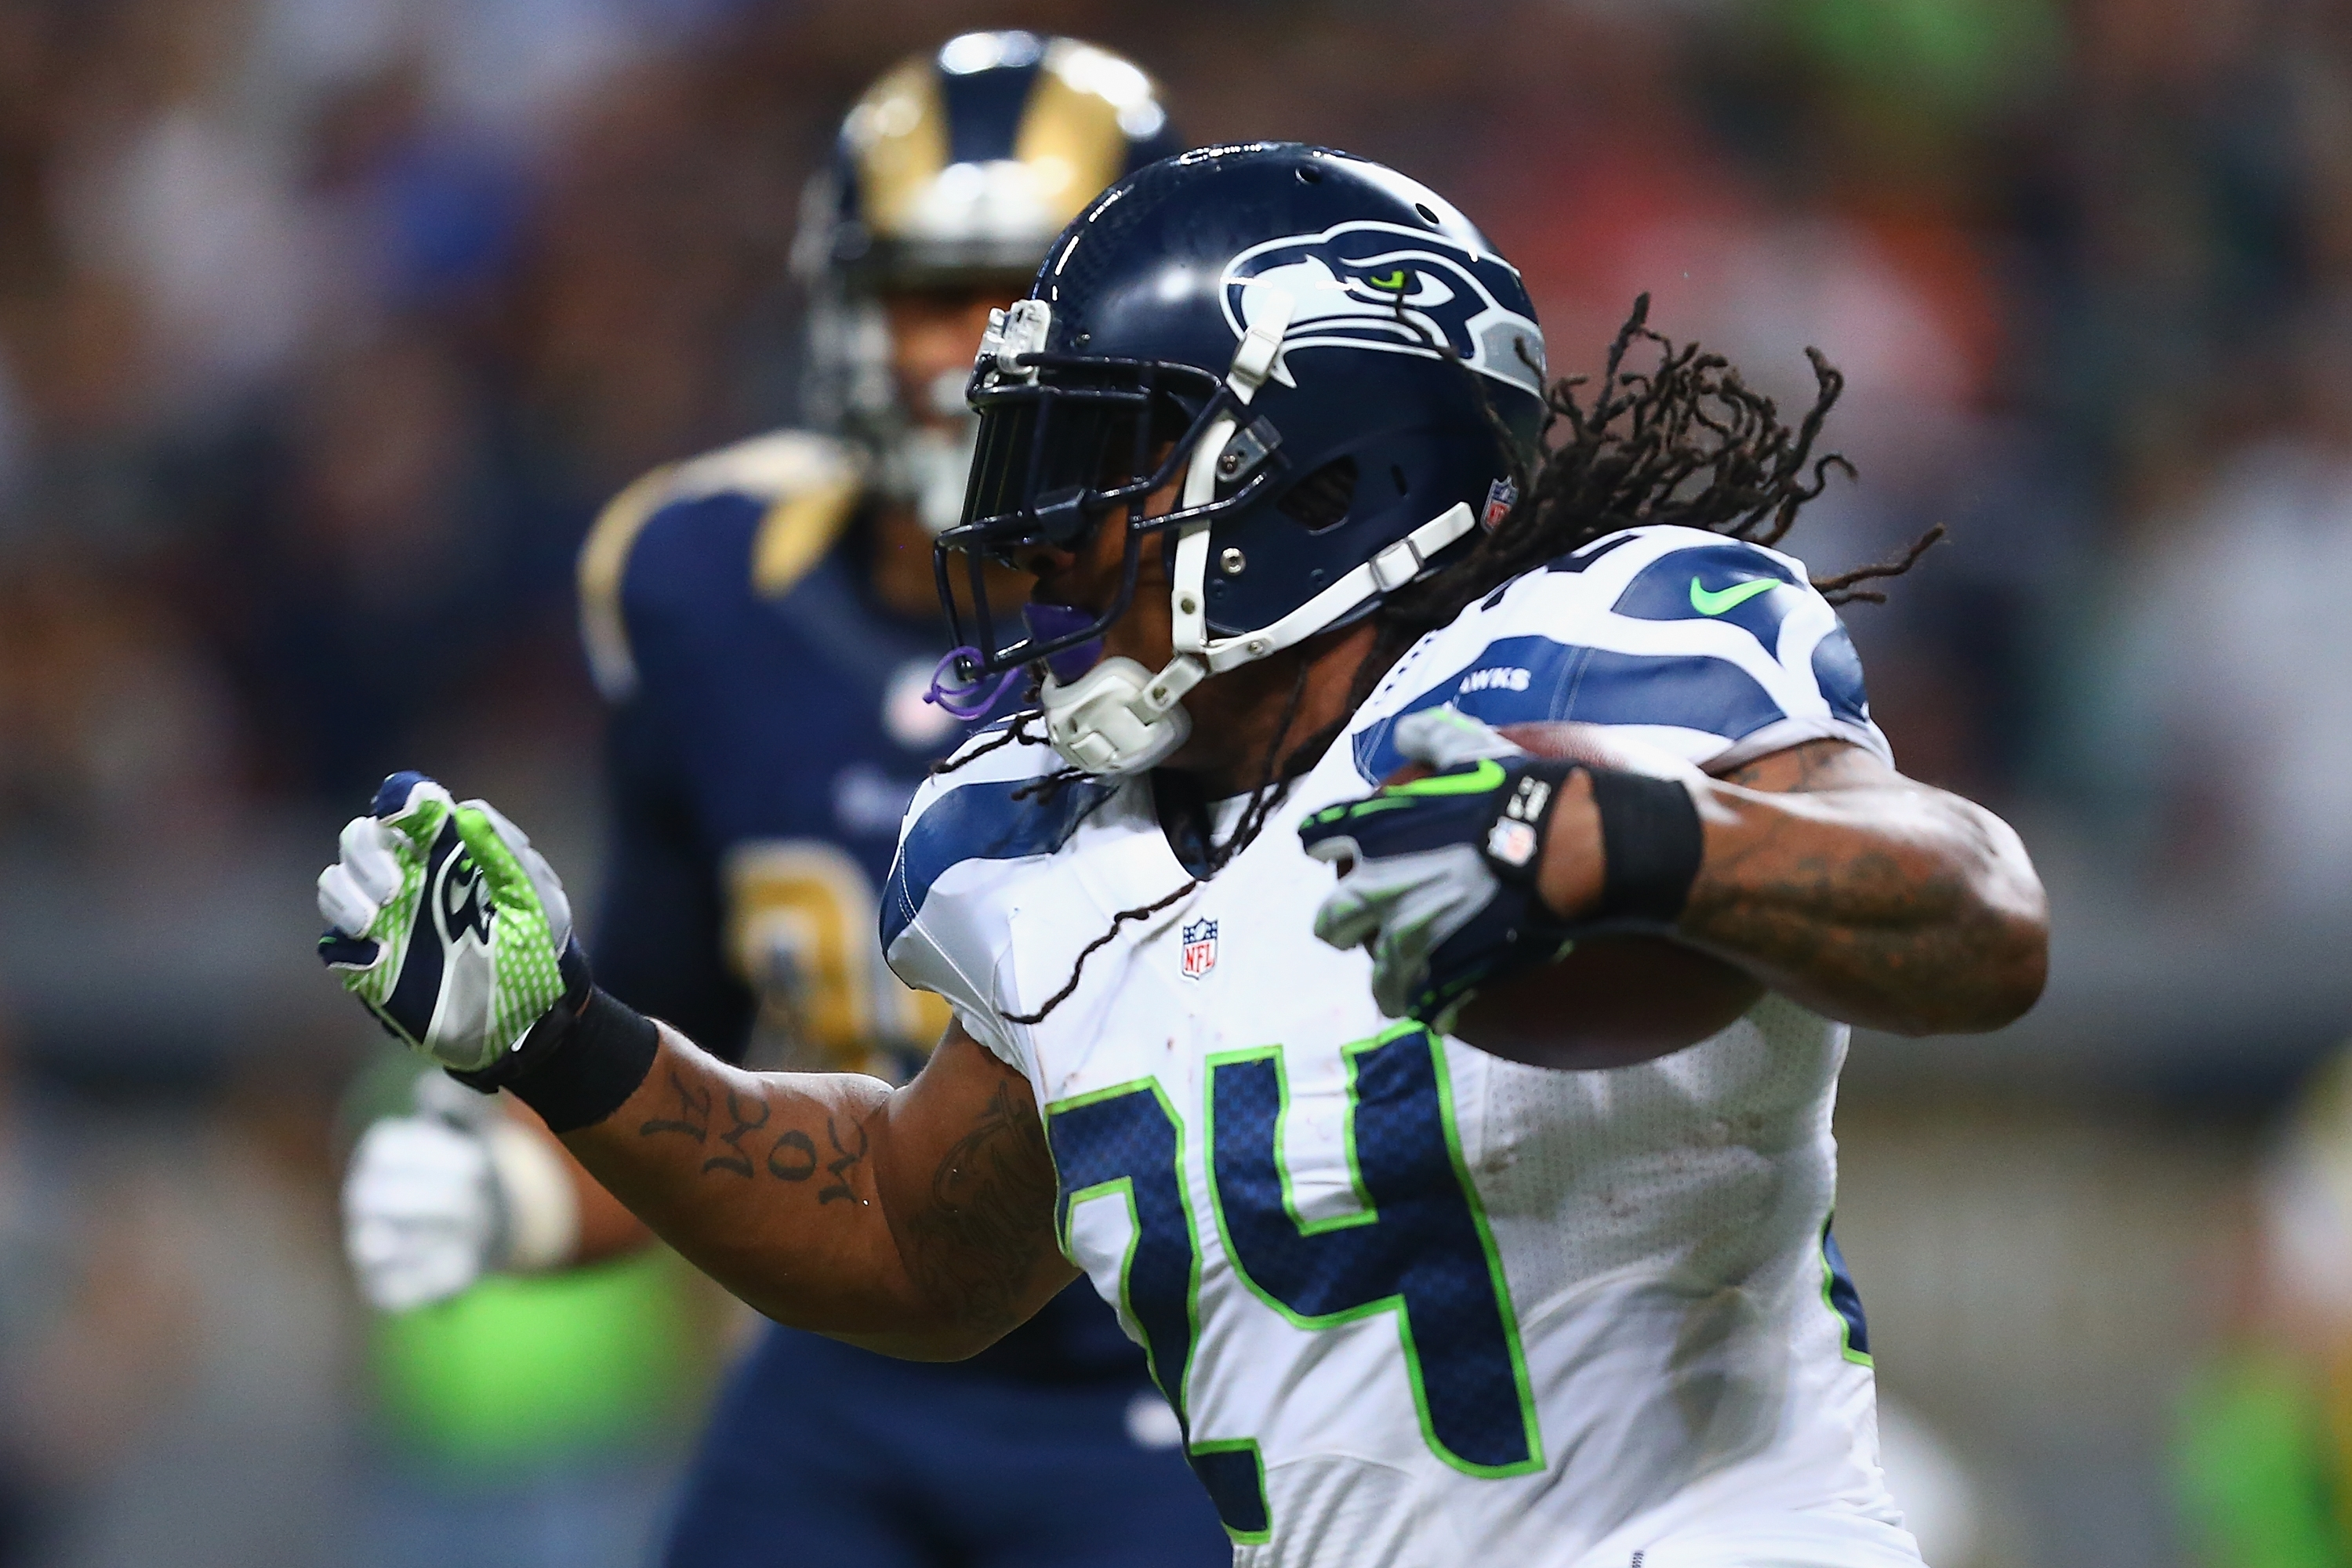 It'll be a big boost for the Seahawks if Marshawn Lynch is ready to return after undergoing abdominal surgery in November. (Getty Images)